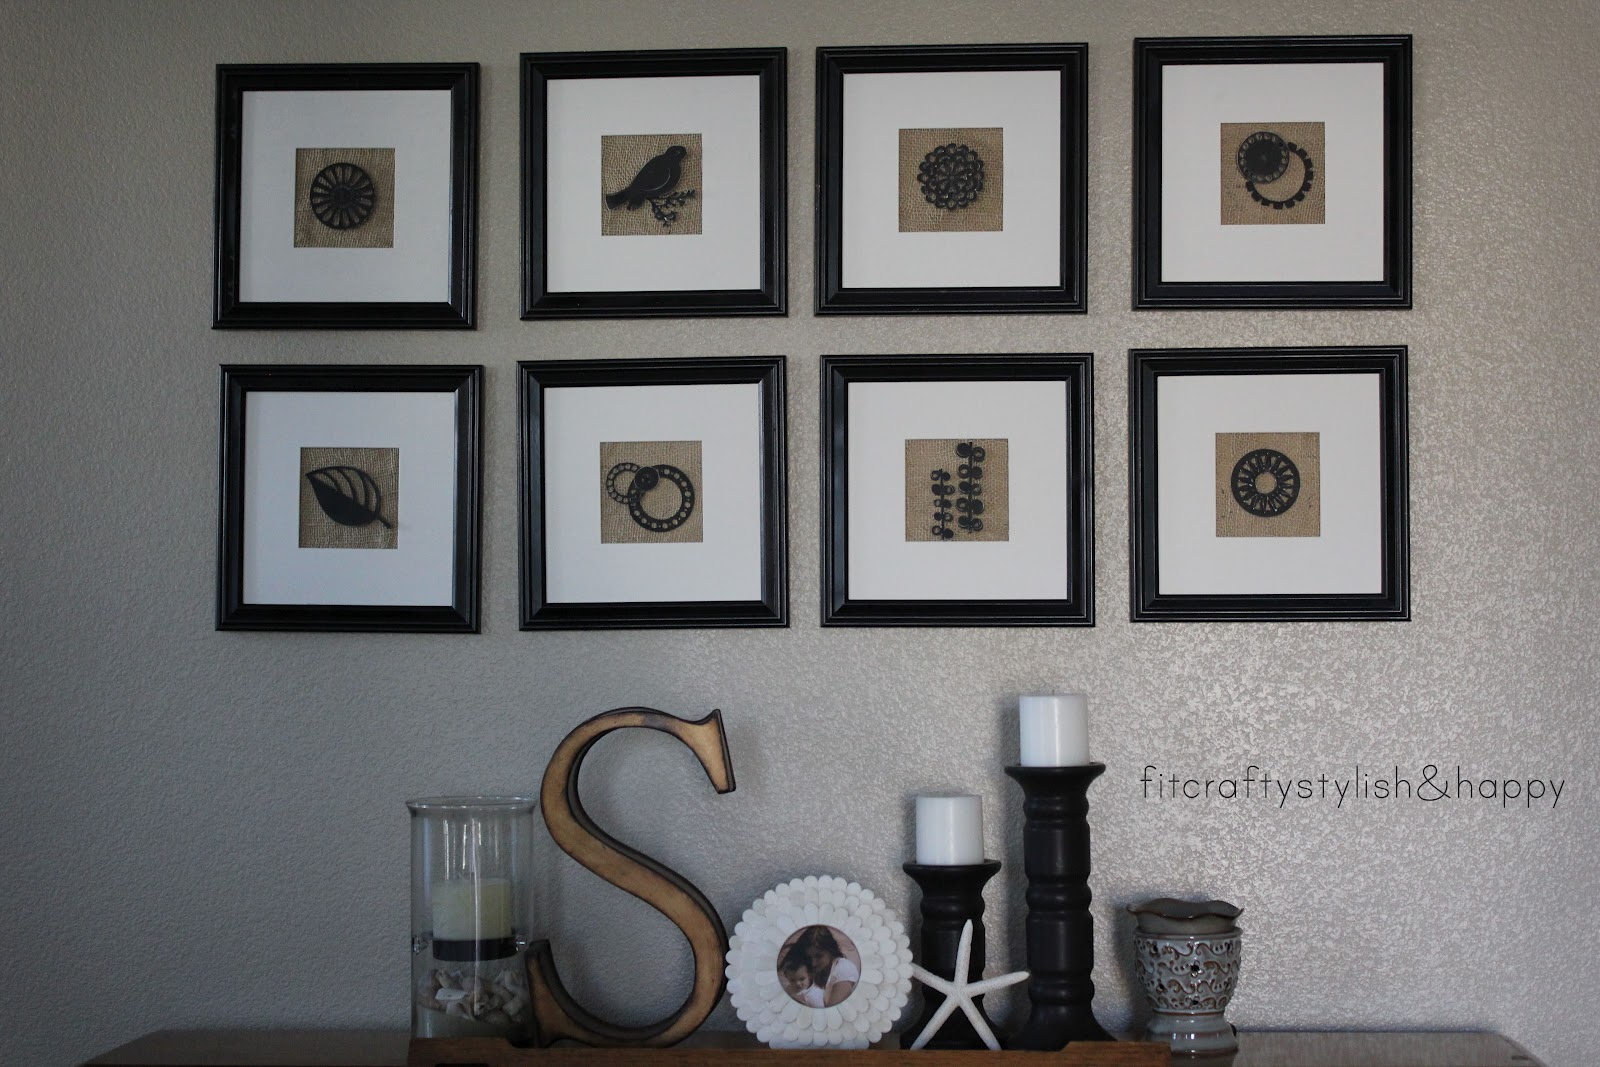 Fit Crafty Stylish And Happy Living Room Makeover